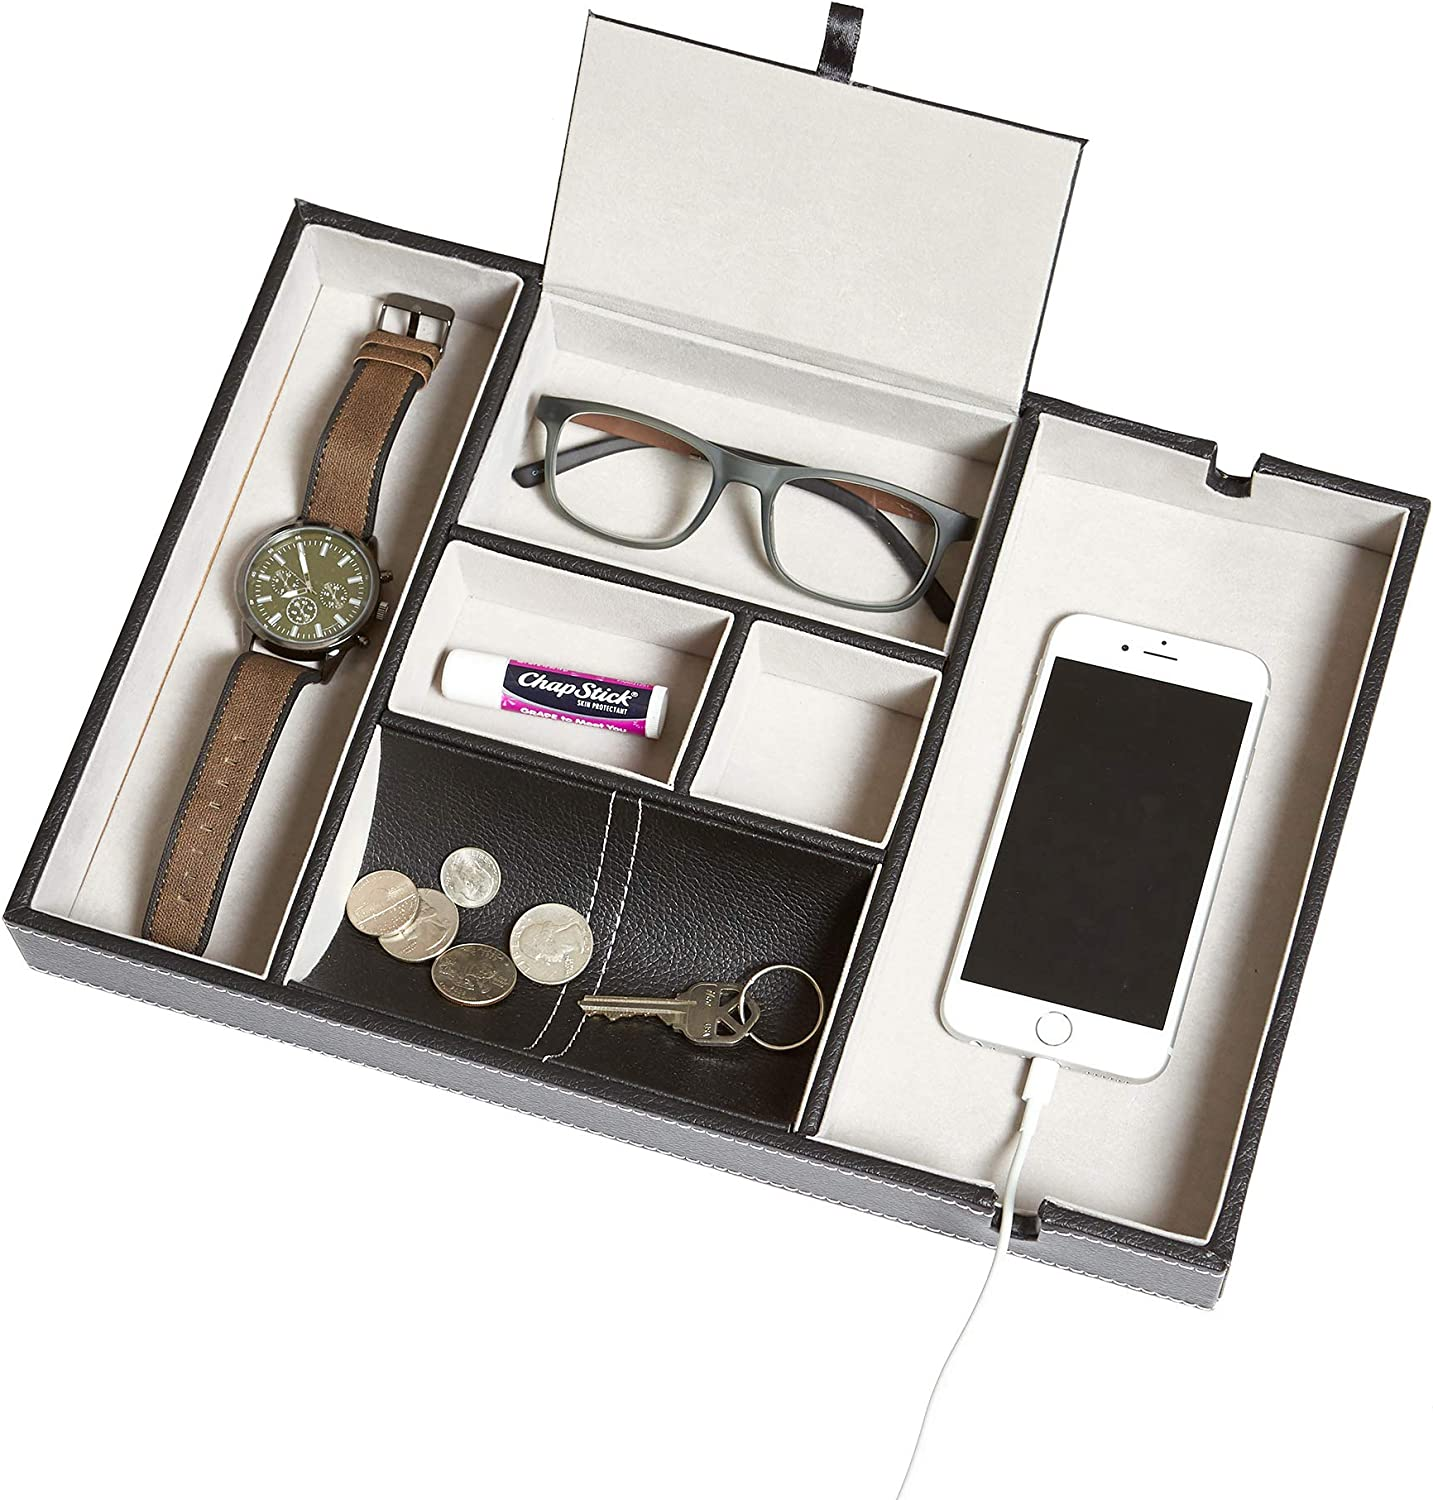 Bedside Tray Organizer - Nightstand Storage Phone/Wallet/Electronics/Charging/Keys/Books/Glasses - Desk/Table/Dresser Caddy - Control Bedside Organizers - Men/Women Smartphone/Jewelry Compartment